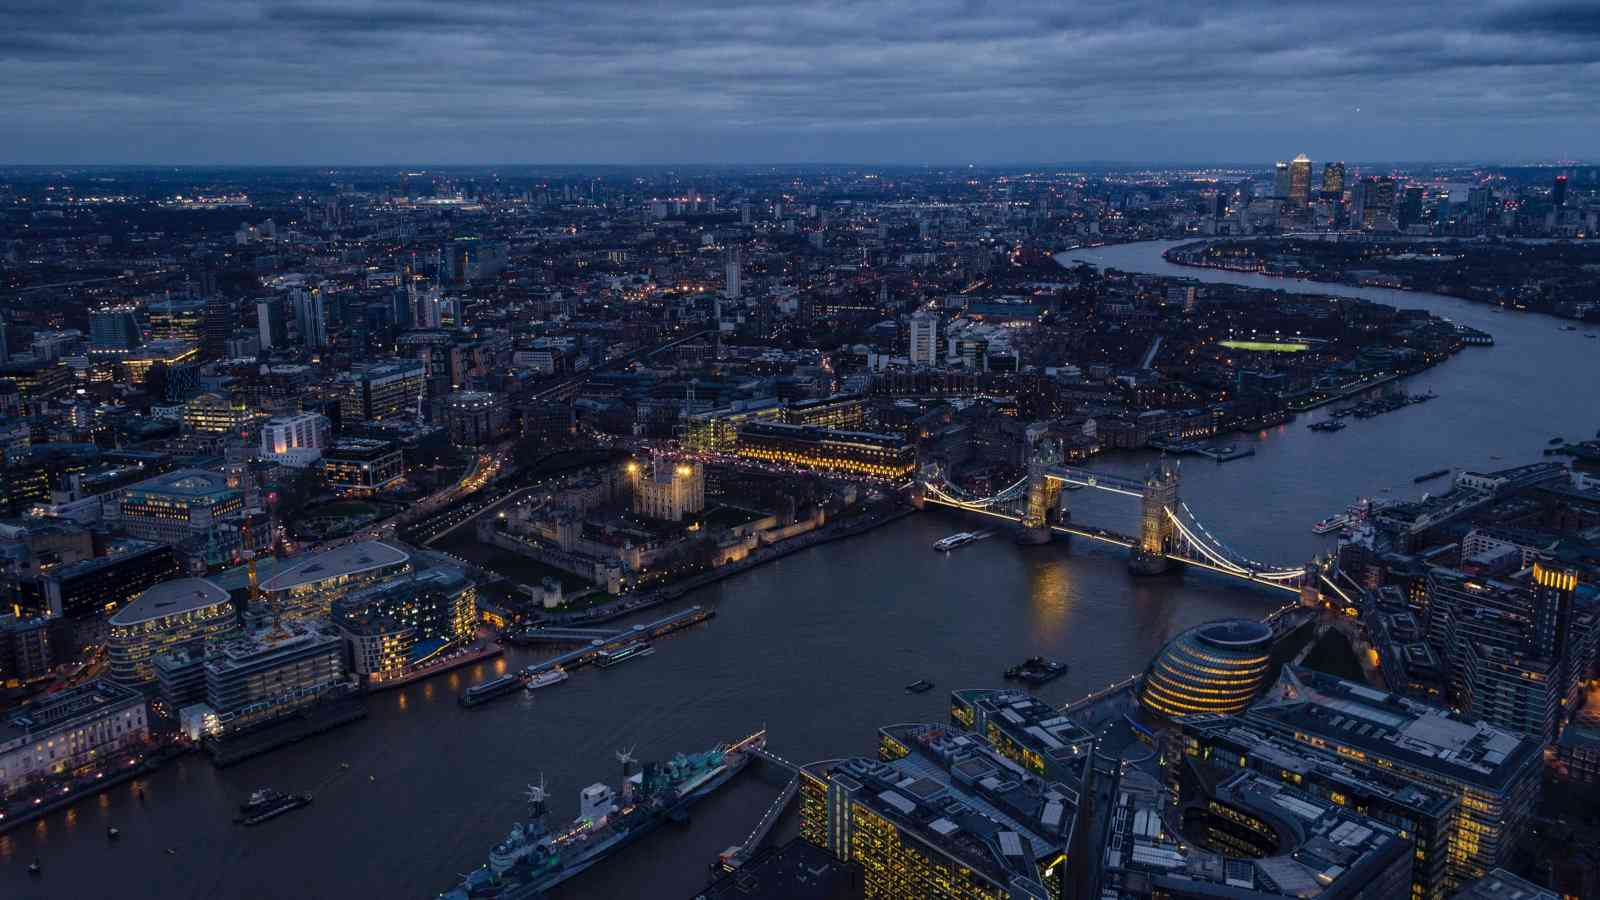 You will find plenty to do in London no matter your tastes or interests